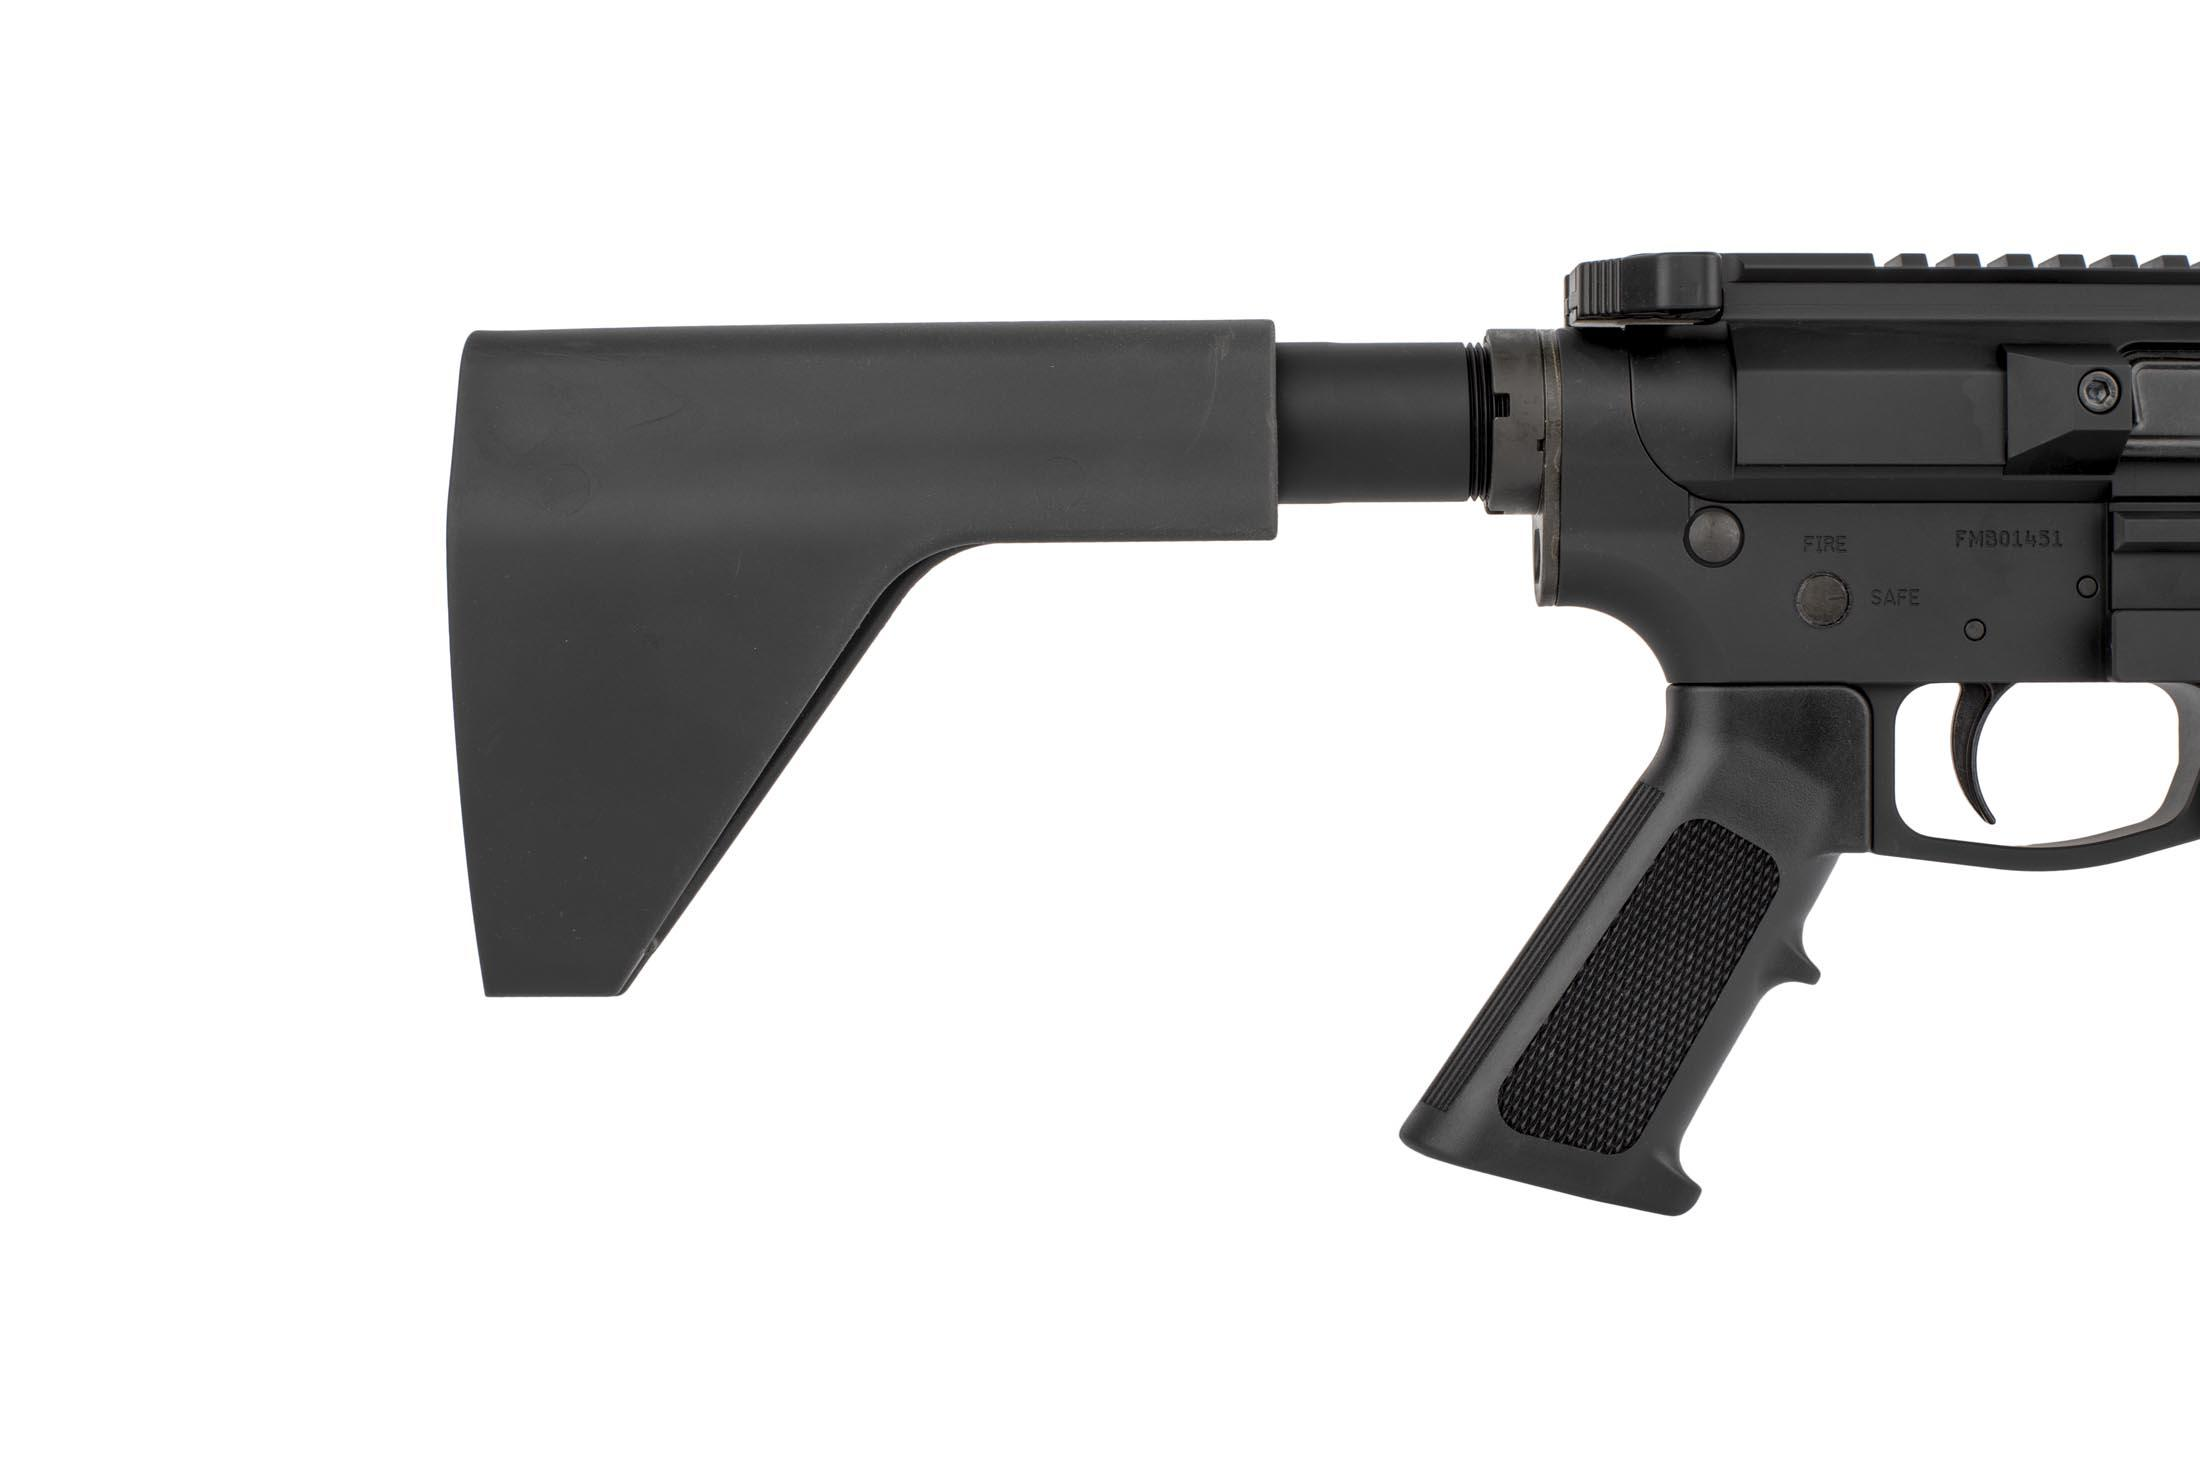 The FM Products 9mm AR pistol with arm brace features a pistol length buffer tube